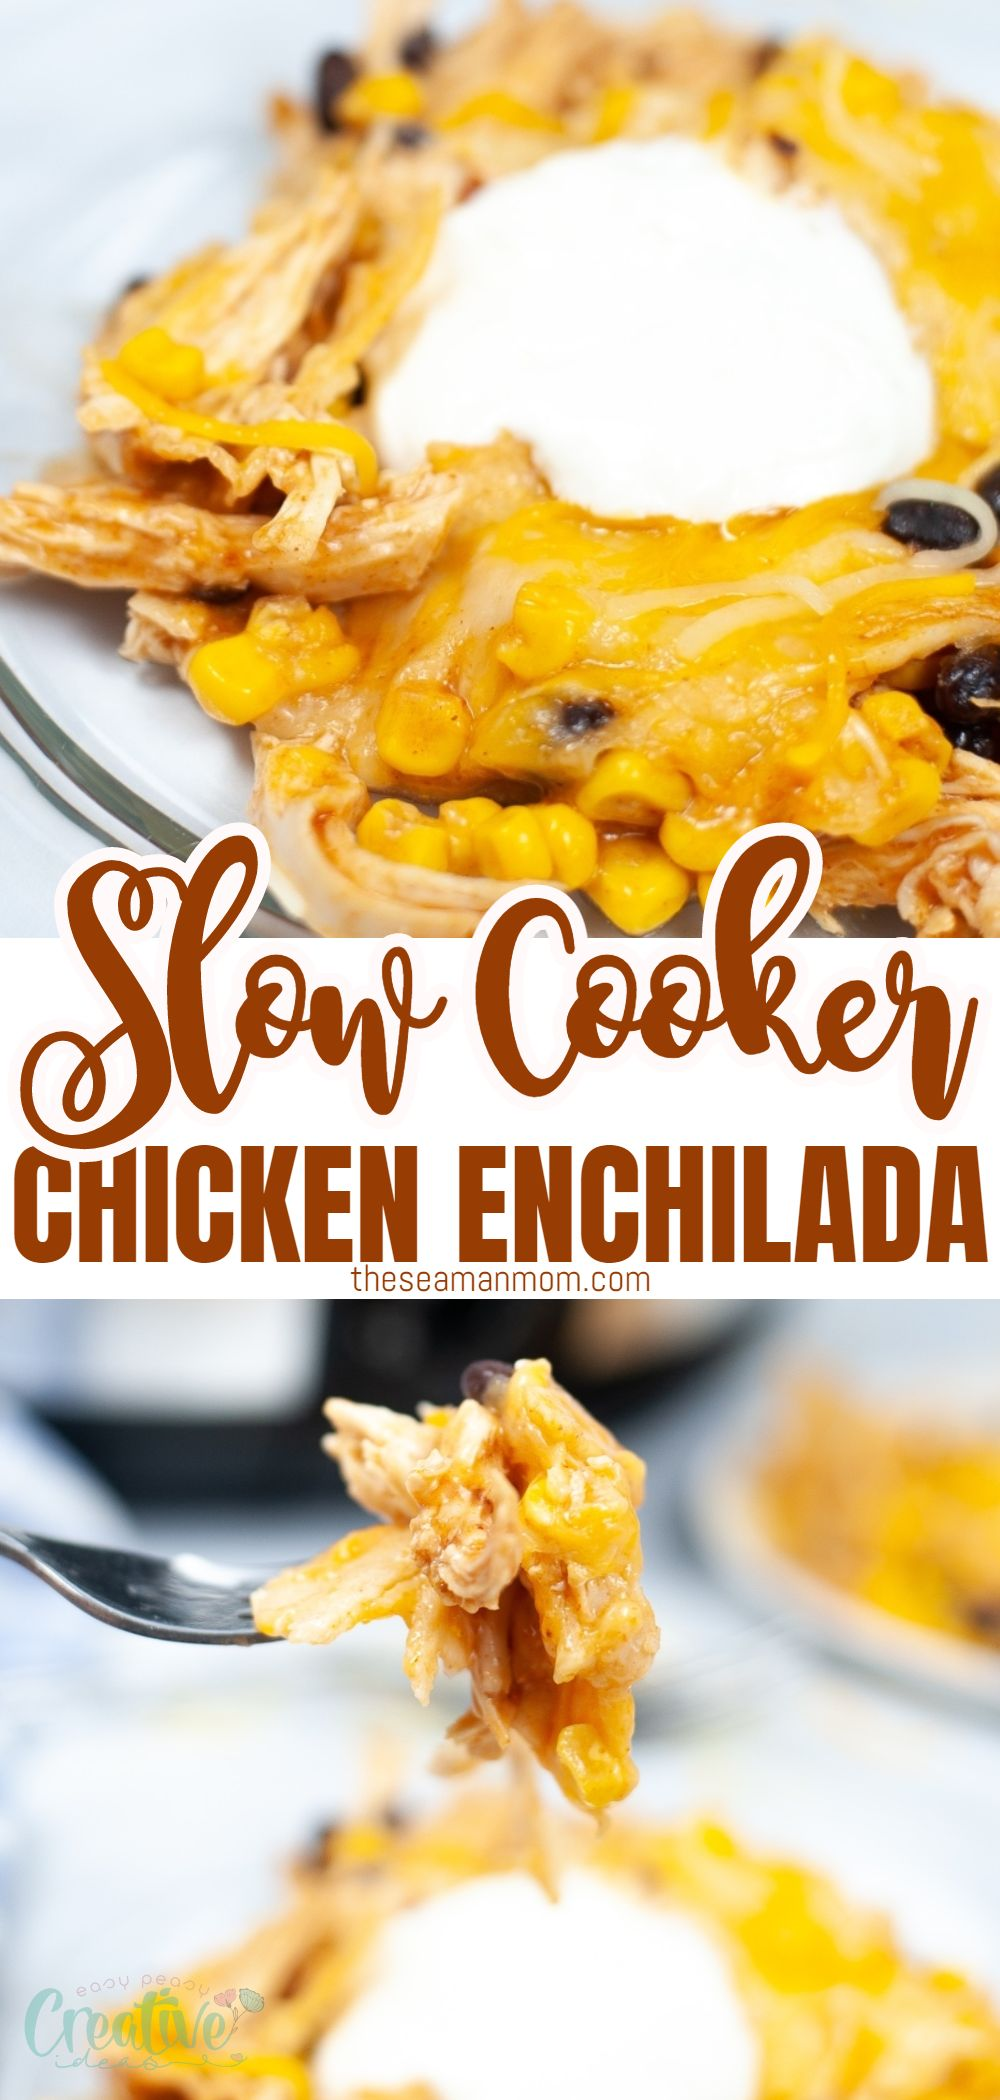 This easy recipe for slow cooker chicken enchilada allows you to create a flavorful meal for your family in half the time it would take to make the oven-baked version! via @petroneagu